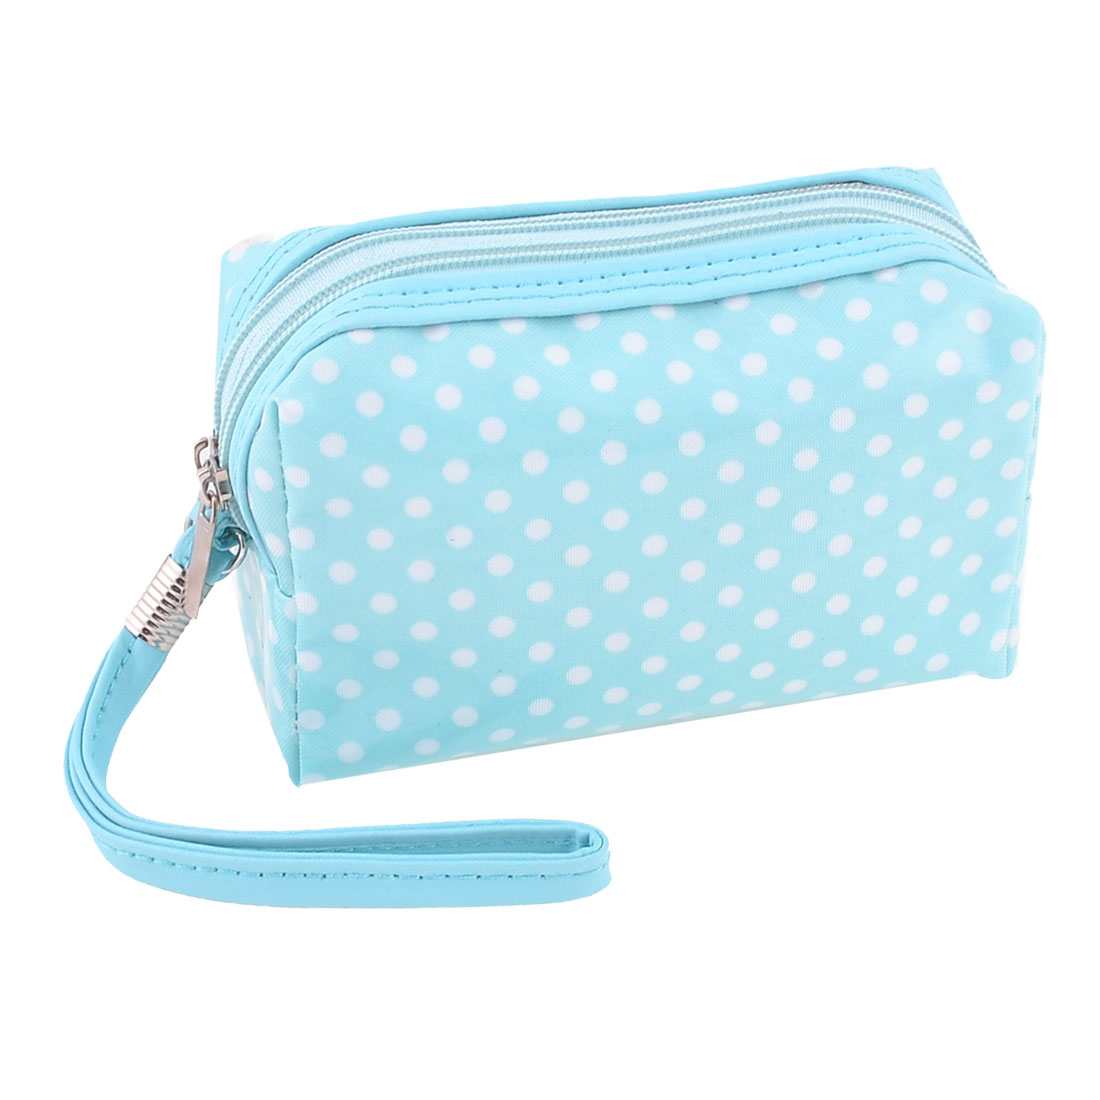 Ladies Zip Up Dots Printed Pockets Cosmetic Bag Coin Purse Blue White